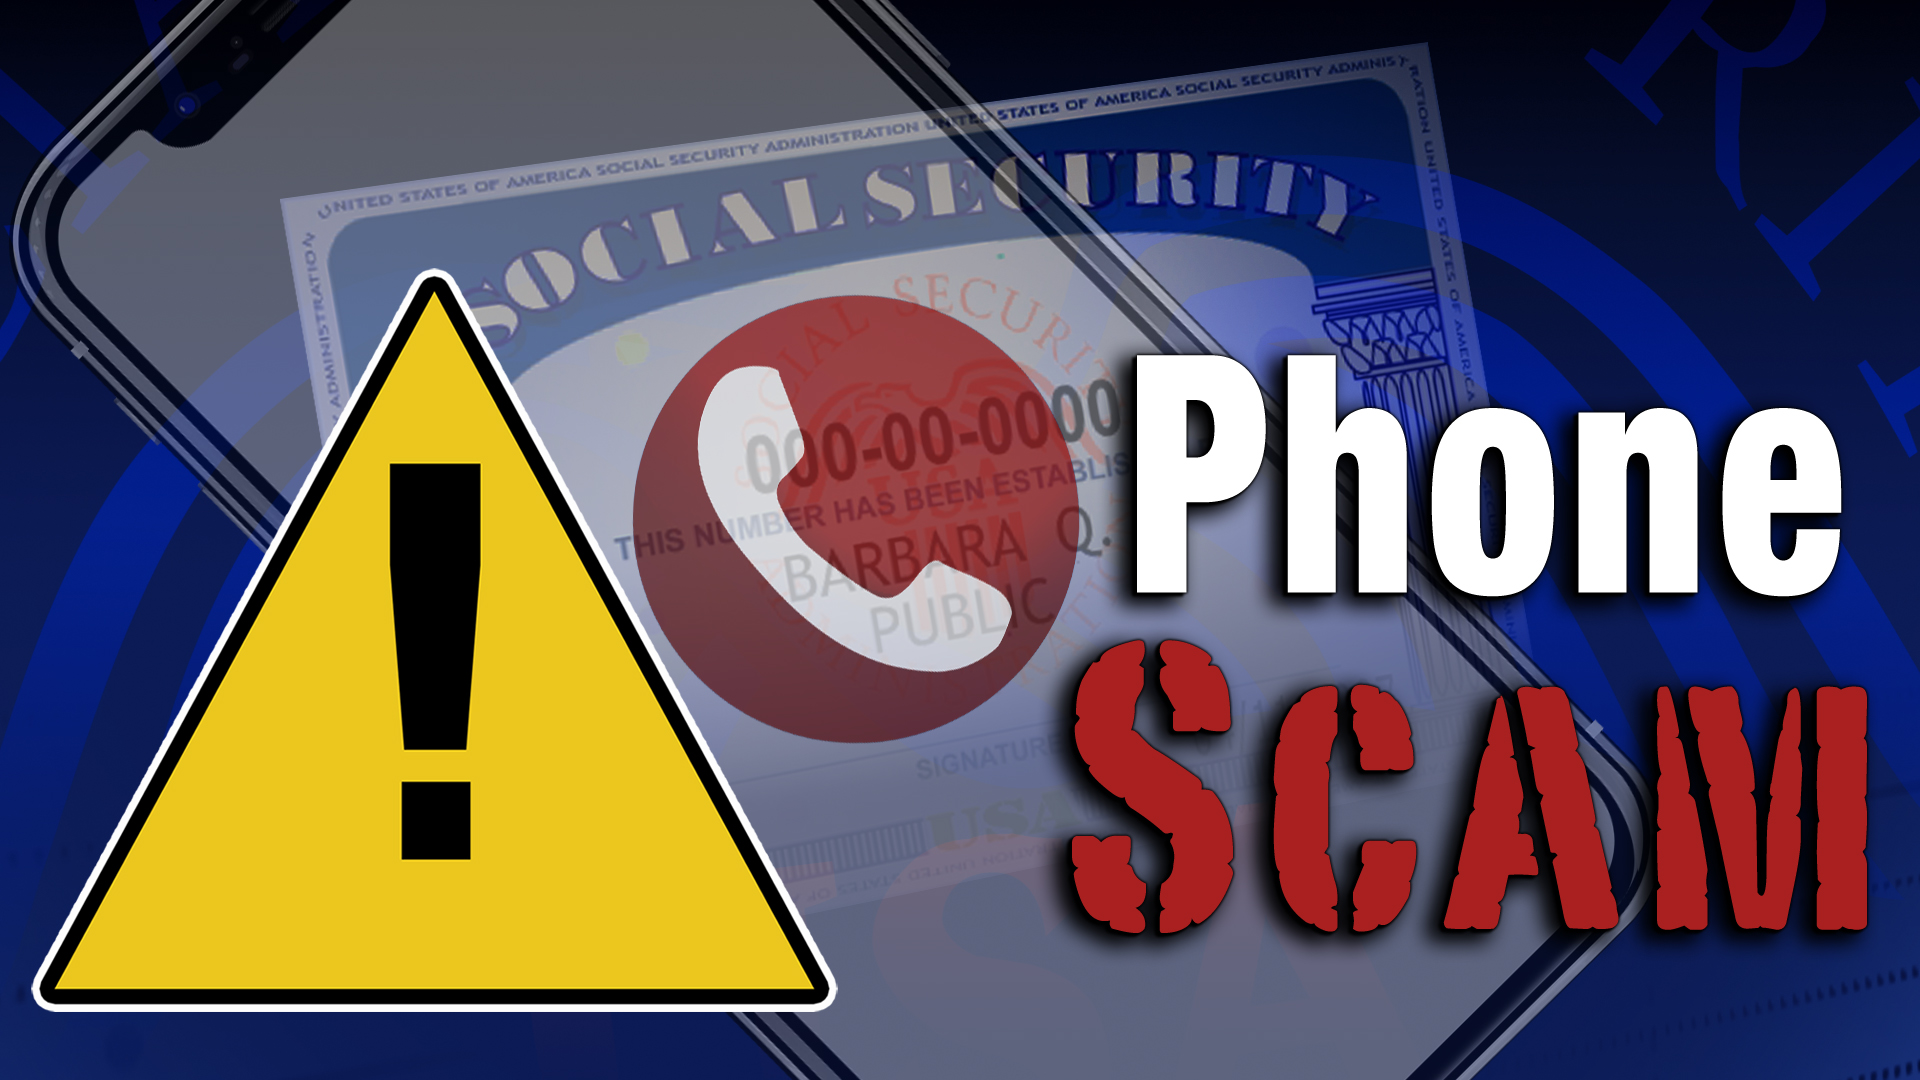 You Can Help Stop Scams Targeting Social Security Vantage Point